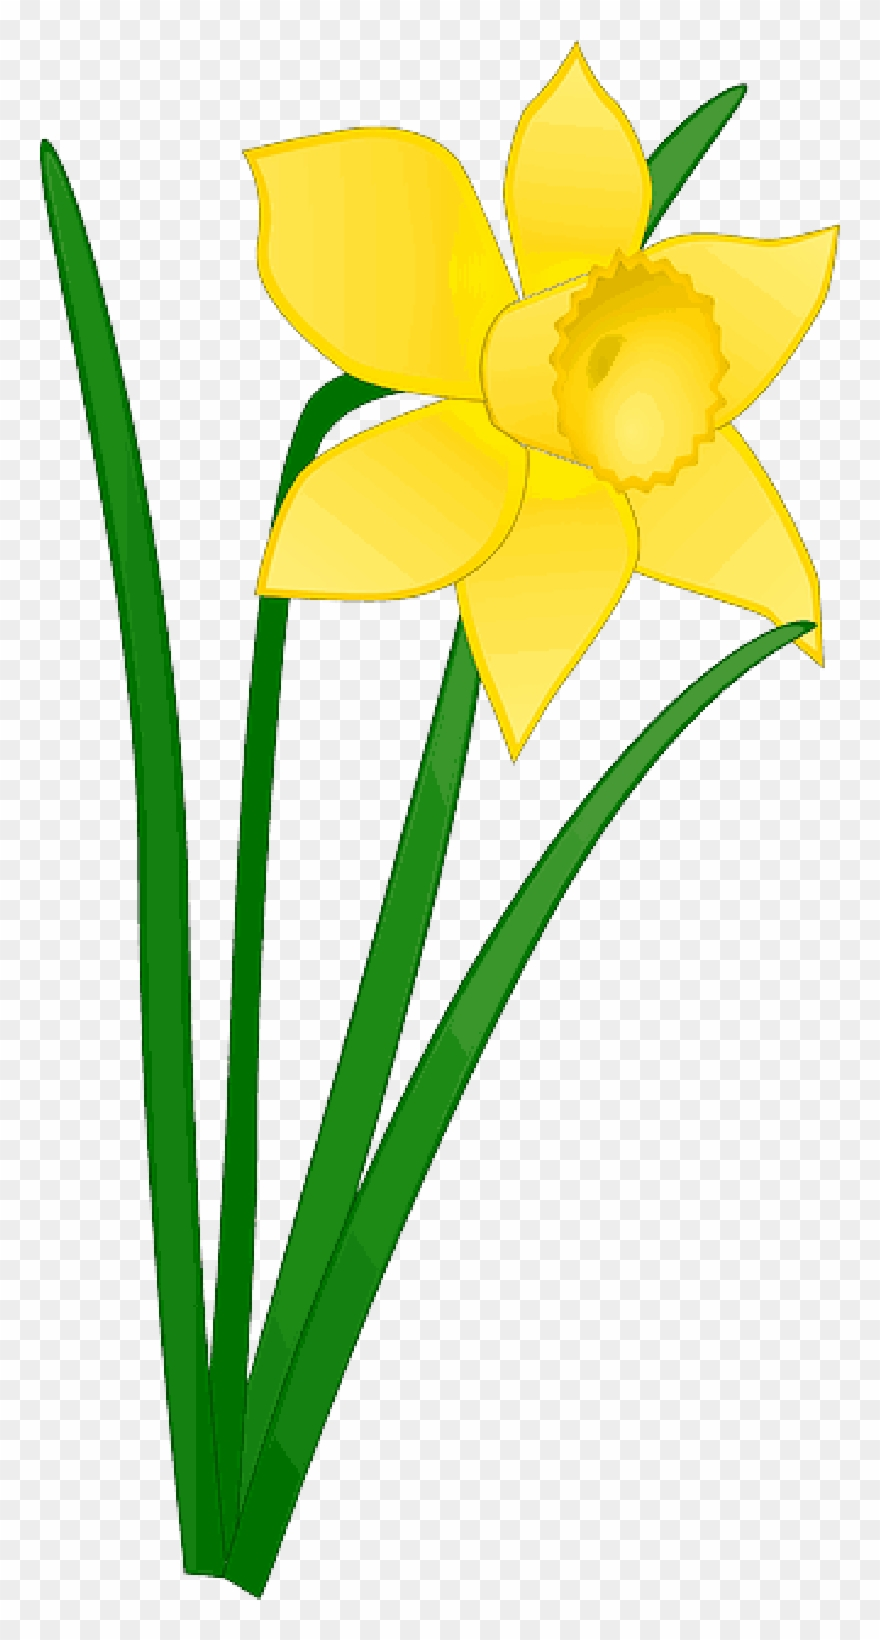 Daffodil clipart image transparent download Daffodil Clipart Church Flower - Daffodil Clipart - Png Download ... image transparent download